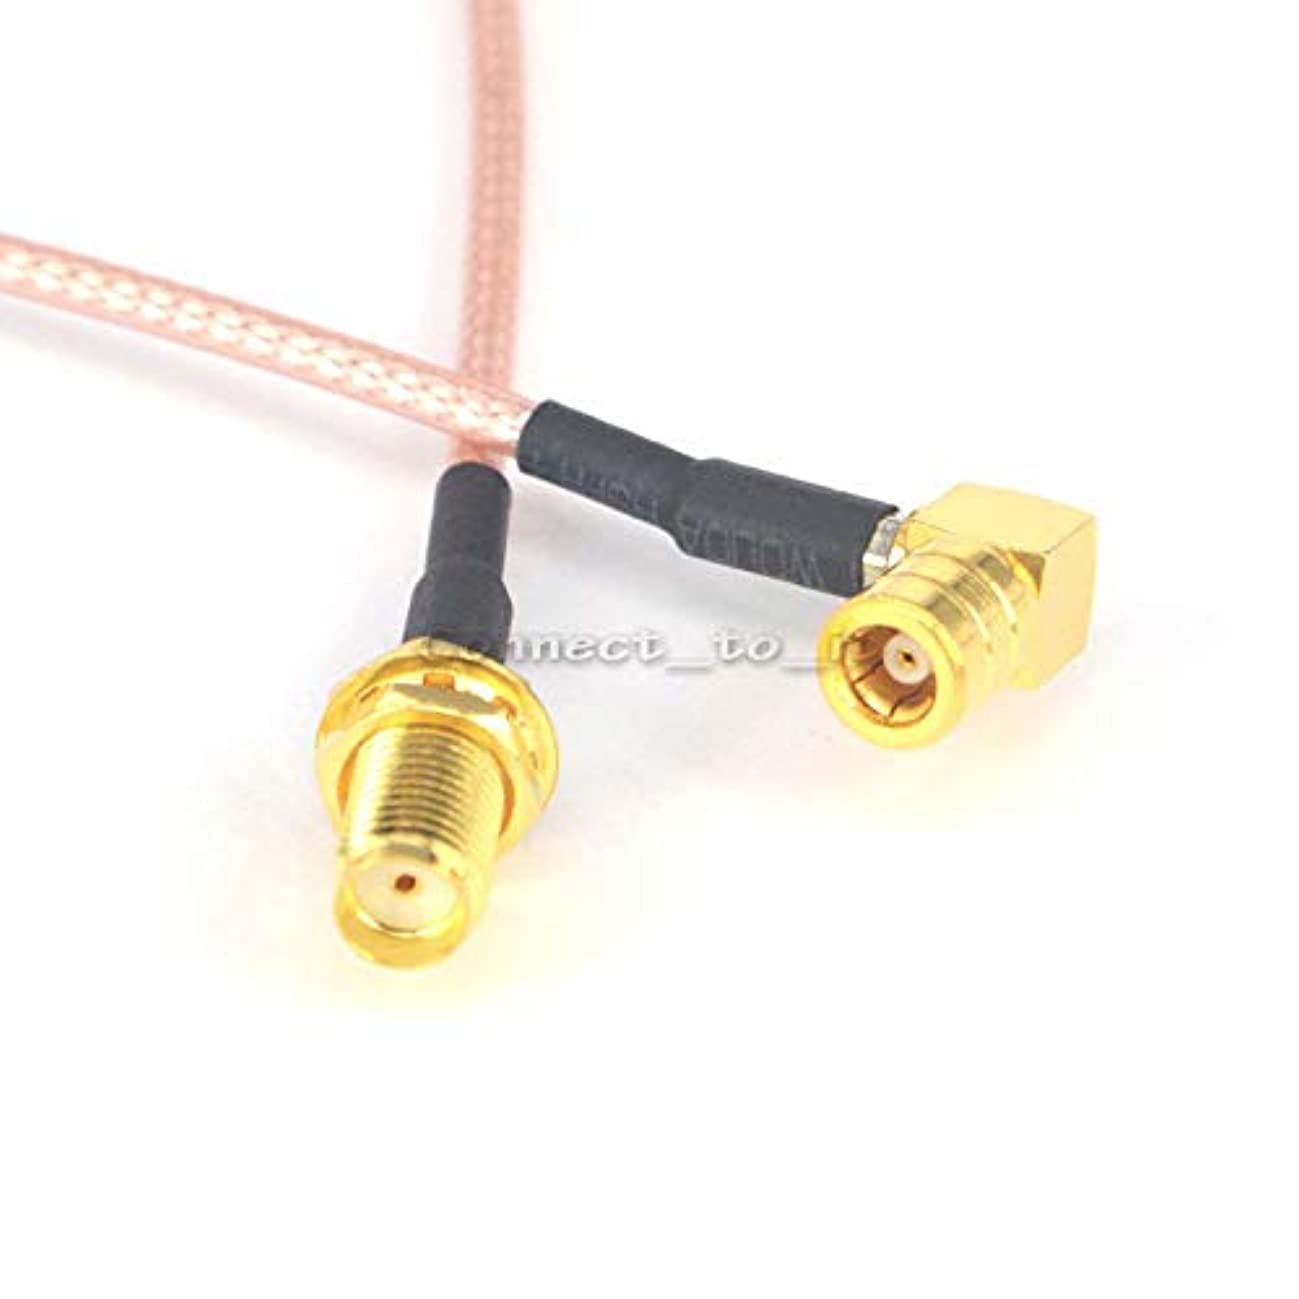 Gimax RF Coaxial SMA Female Bulkhead to SMB Female Right Angle Connector USB Modem Adapter Extension Cable 15CM